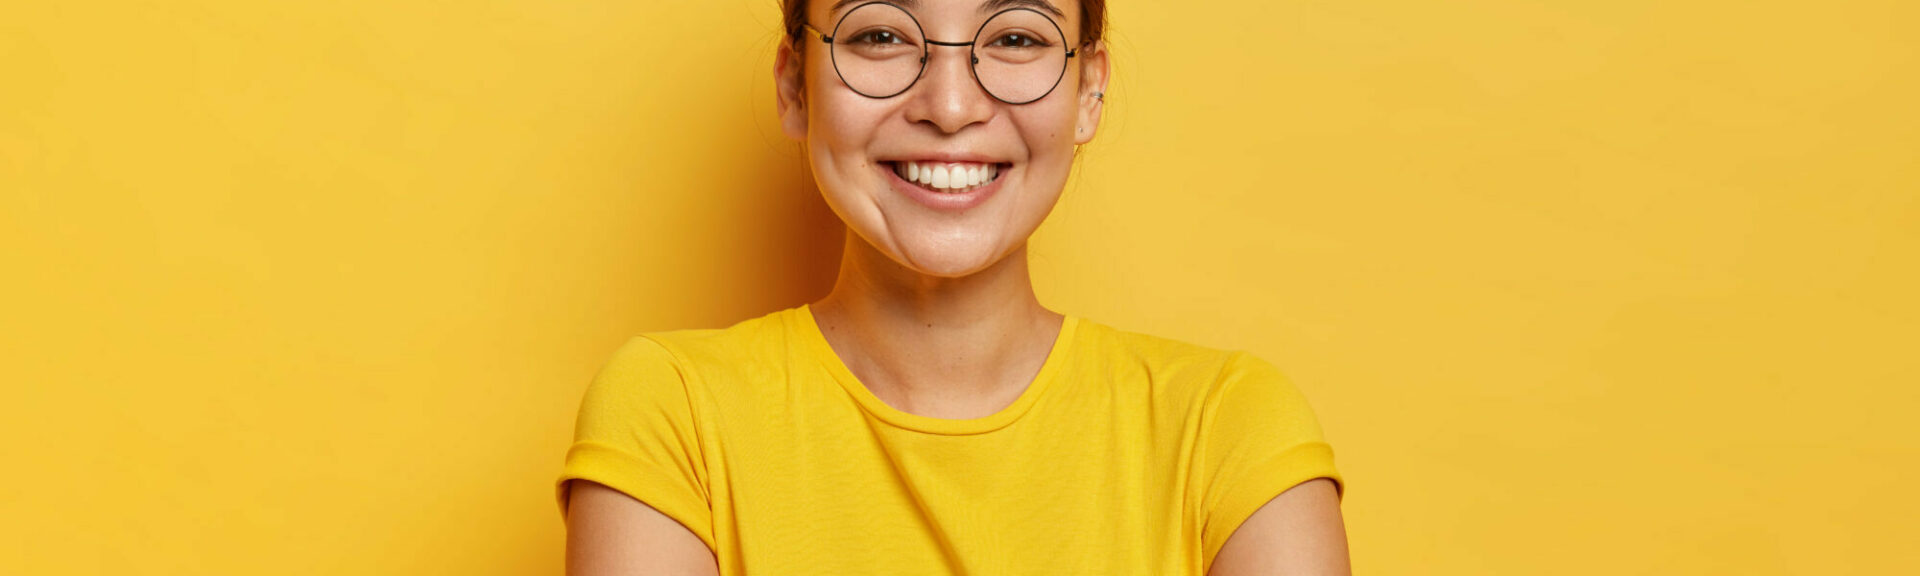 Isolated shot of pleased cheerful woman with eastern appearance, smiles broadly, being in good mood, entertained by funny friends, dressed casually, wears big transparent glasses, isolated on yellow